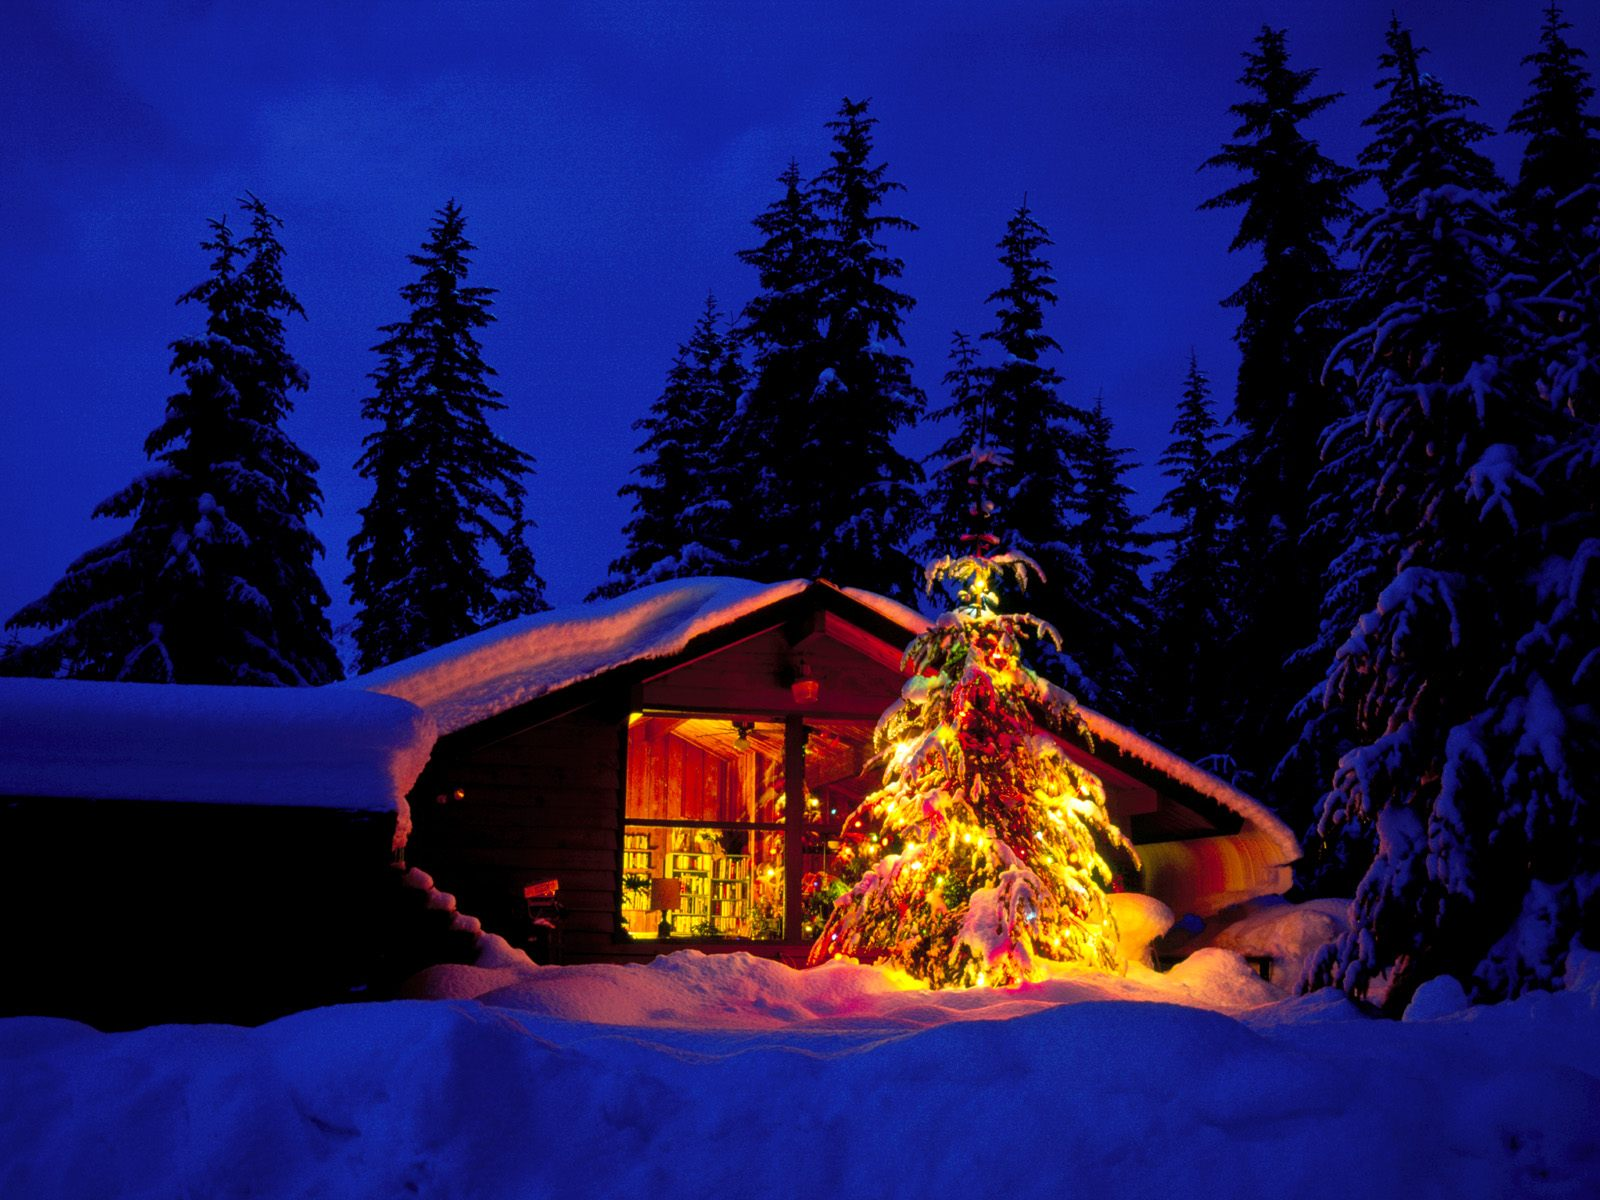 Cozy-Christmas-wallpaper-wp3804130